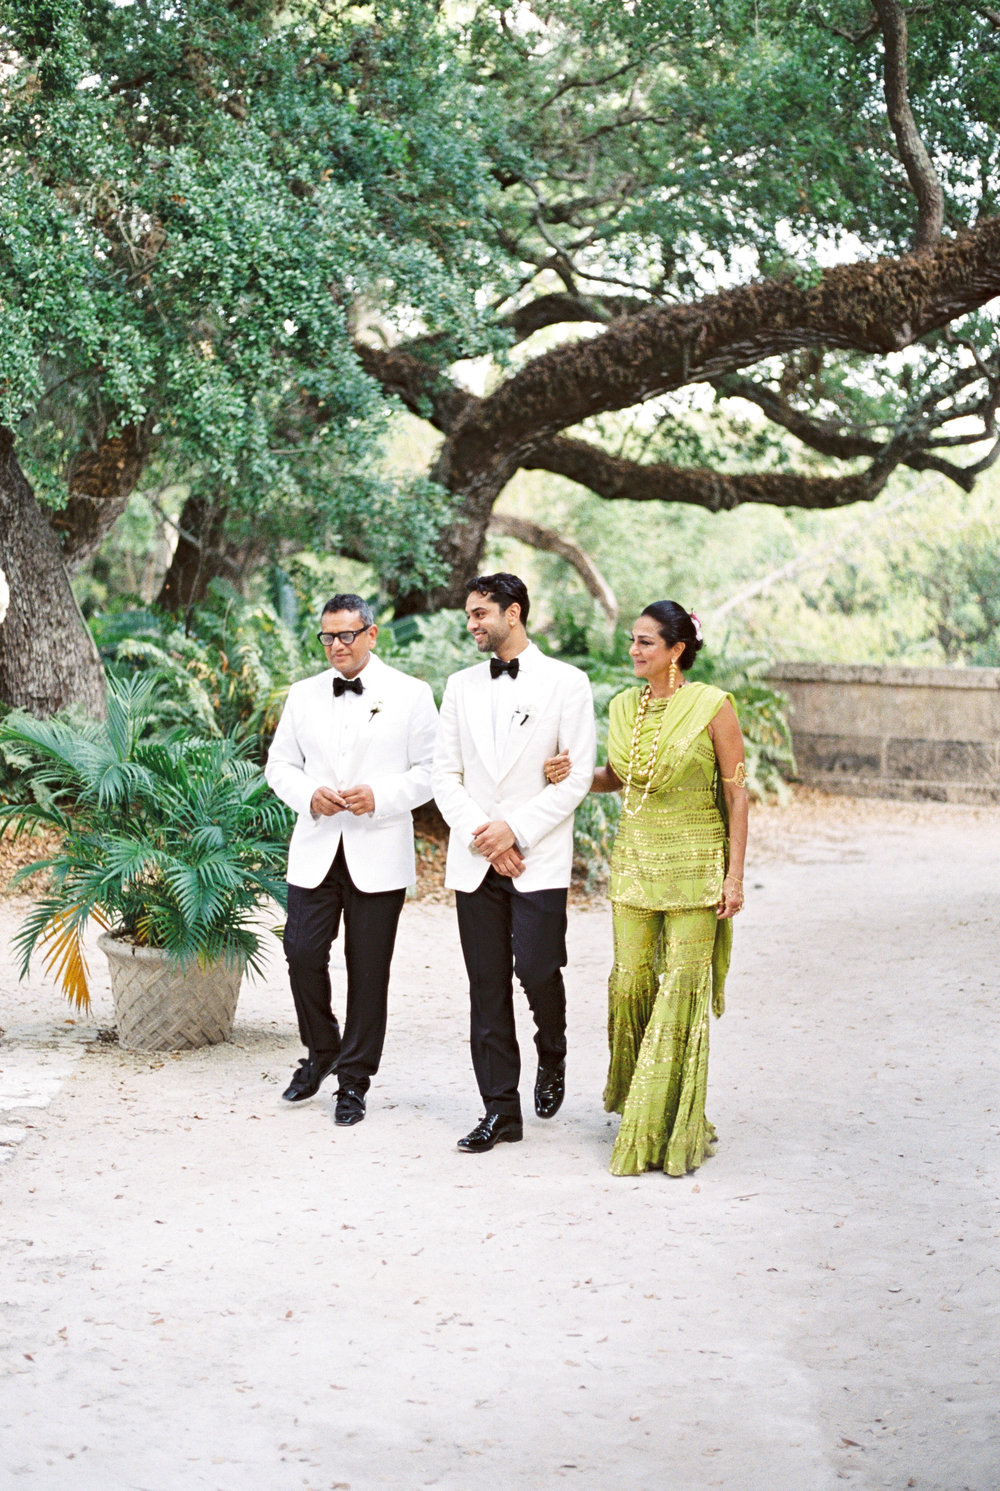 vizcaya-miami-destination-film-wedding-photographer-4443_15.jpg